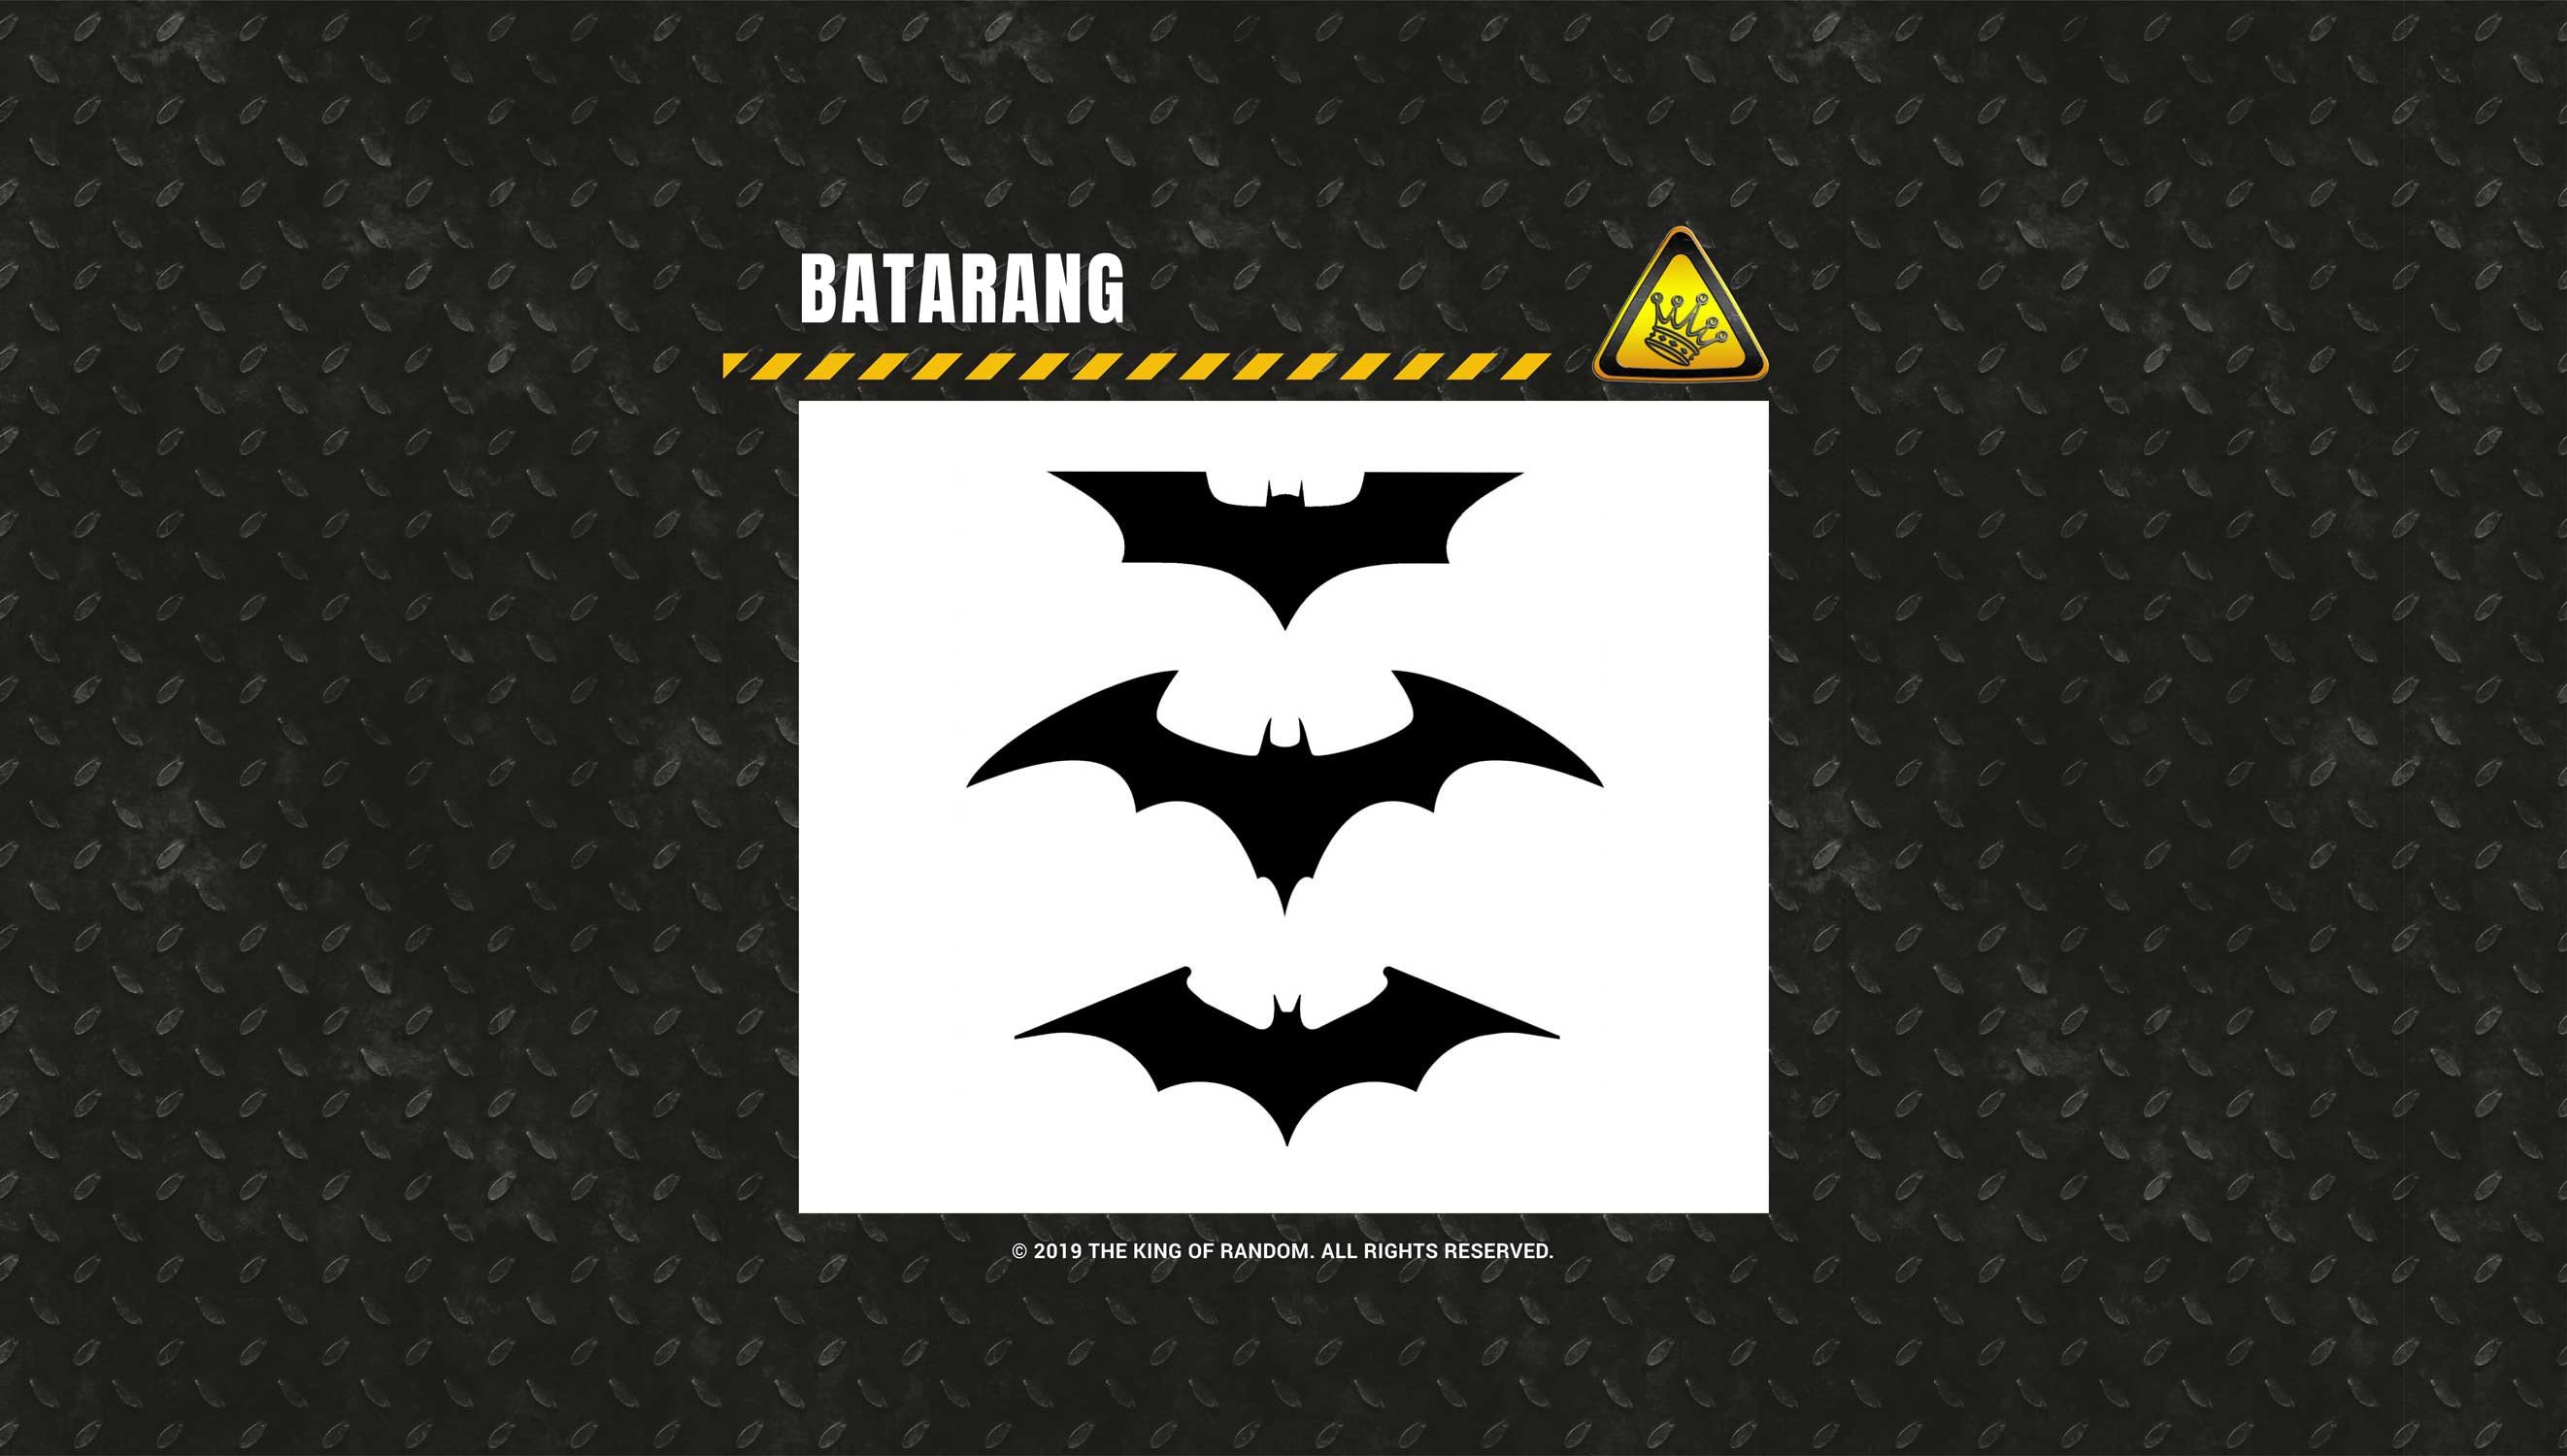 Batarang Template Pdf Batarang Template the King Of Random